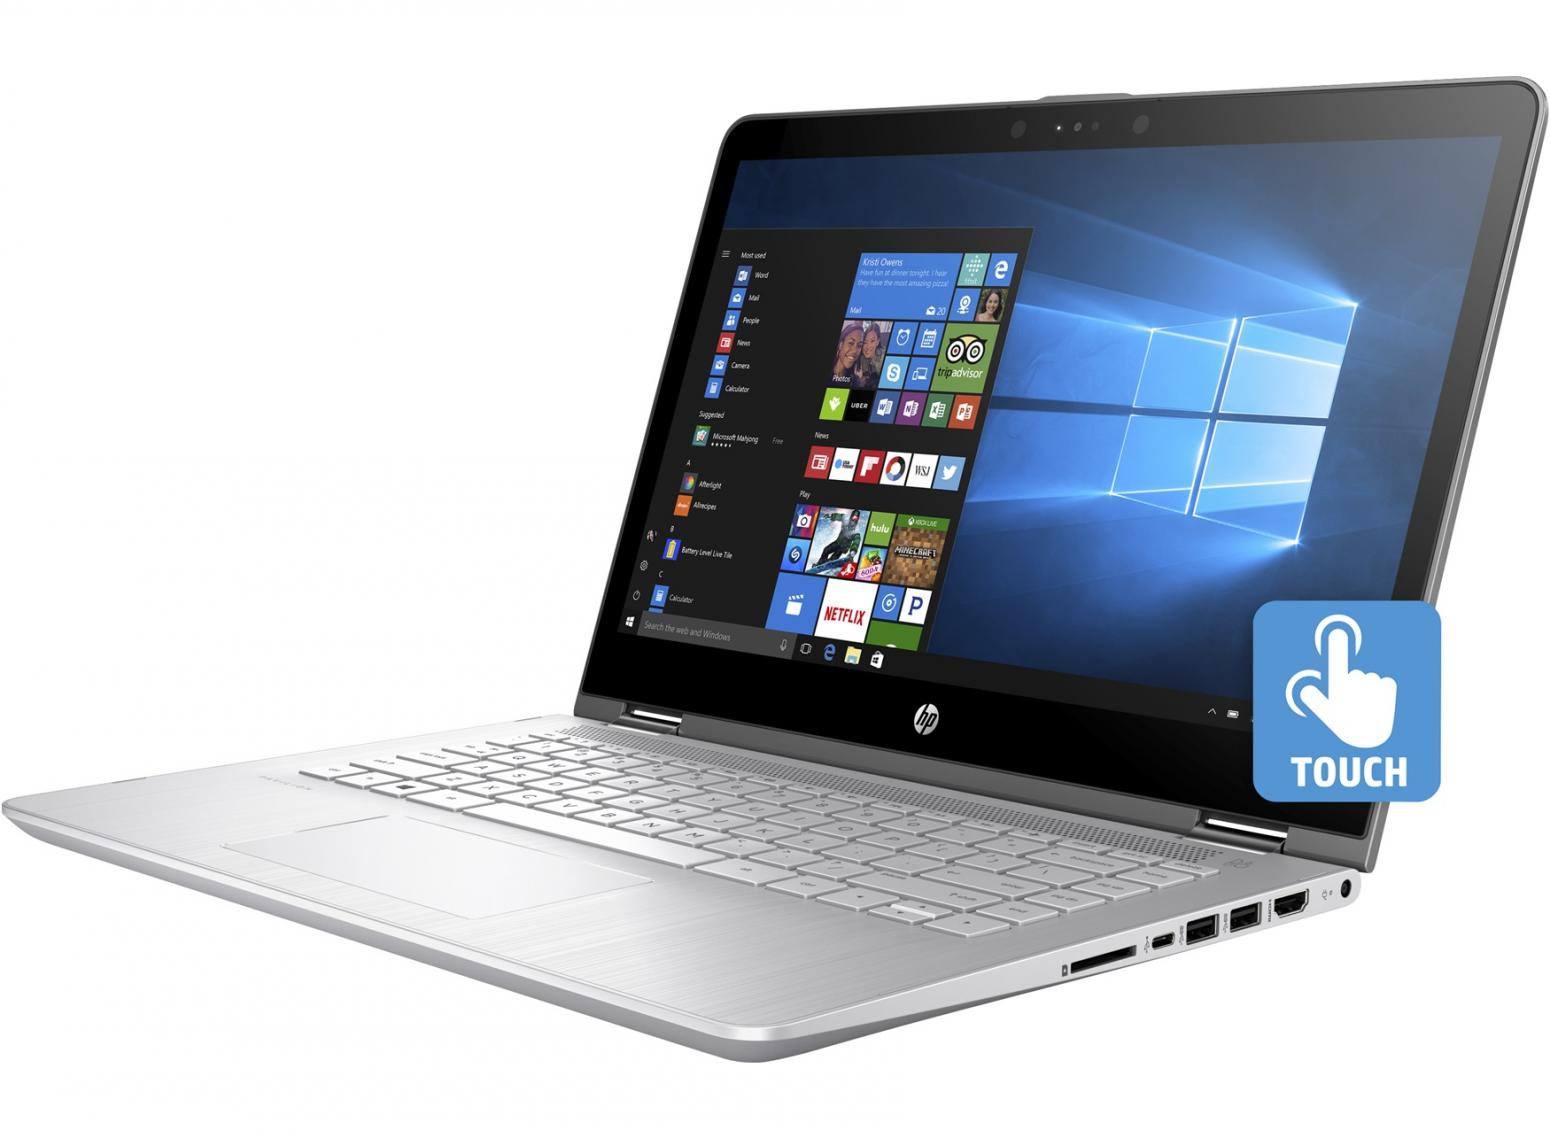 Ordinateur portable HP Pavilion x360 14-ba034nf SSD Argent Tactile IPS - photo 6